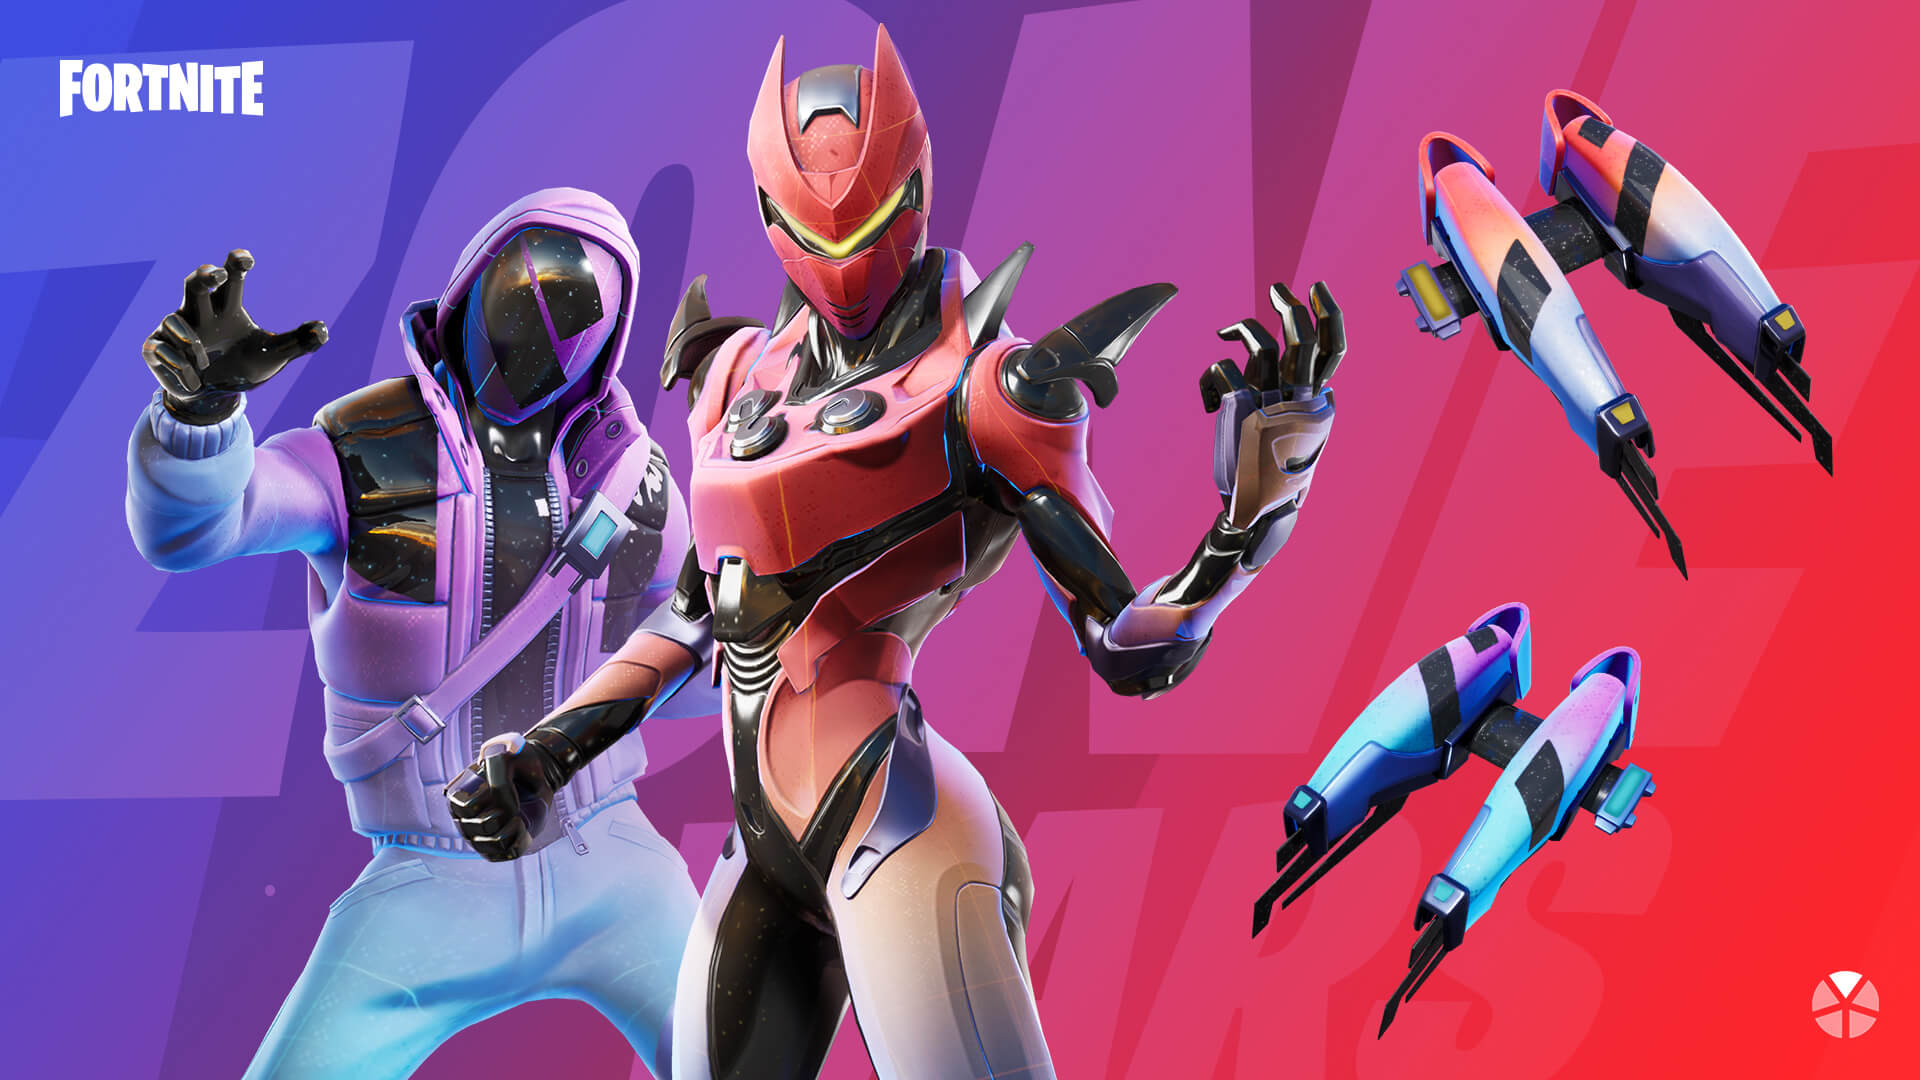 Fortnite Hot Zone and Danger Zone Outfits